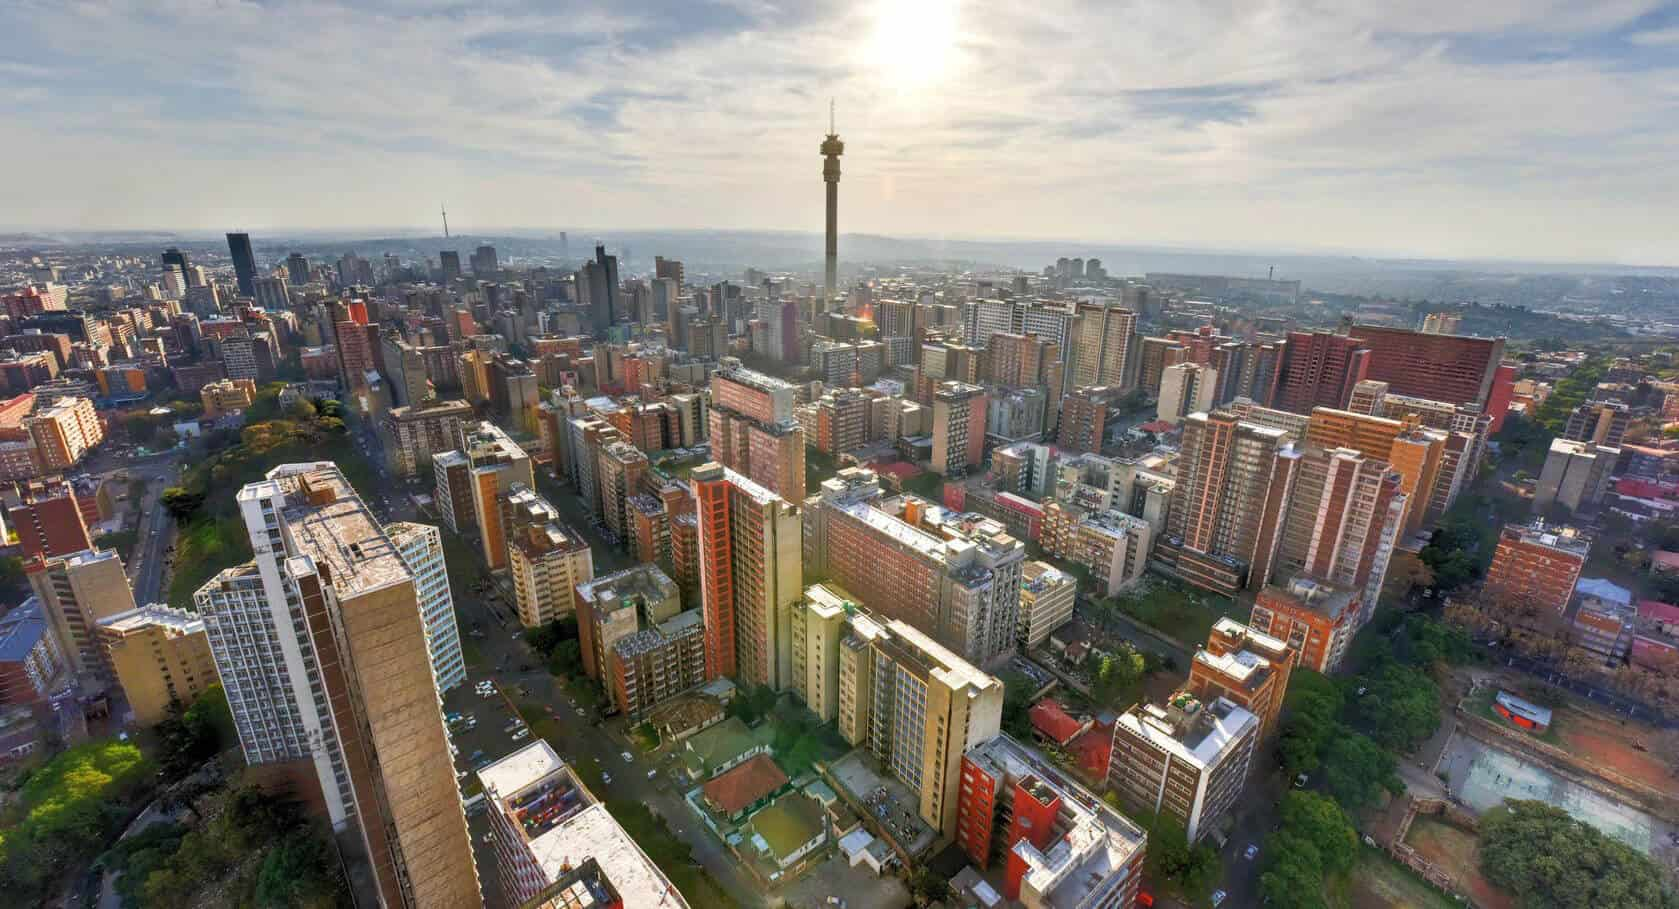 Highlights in and around Johannesburg and Pretoria